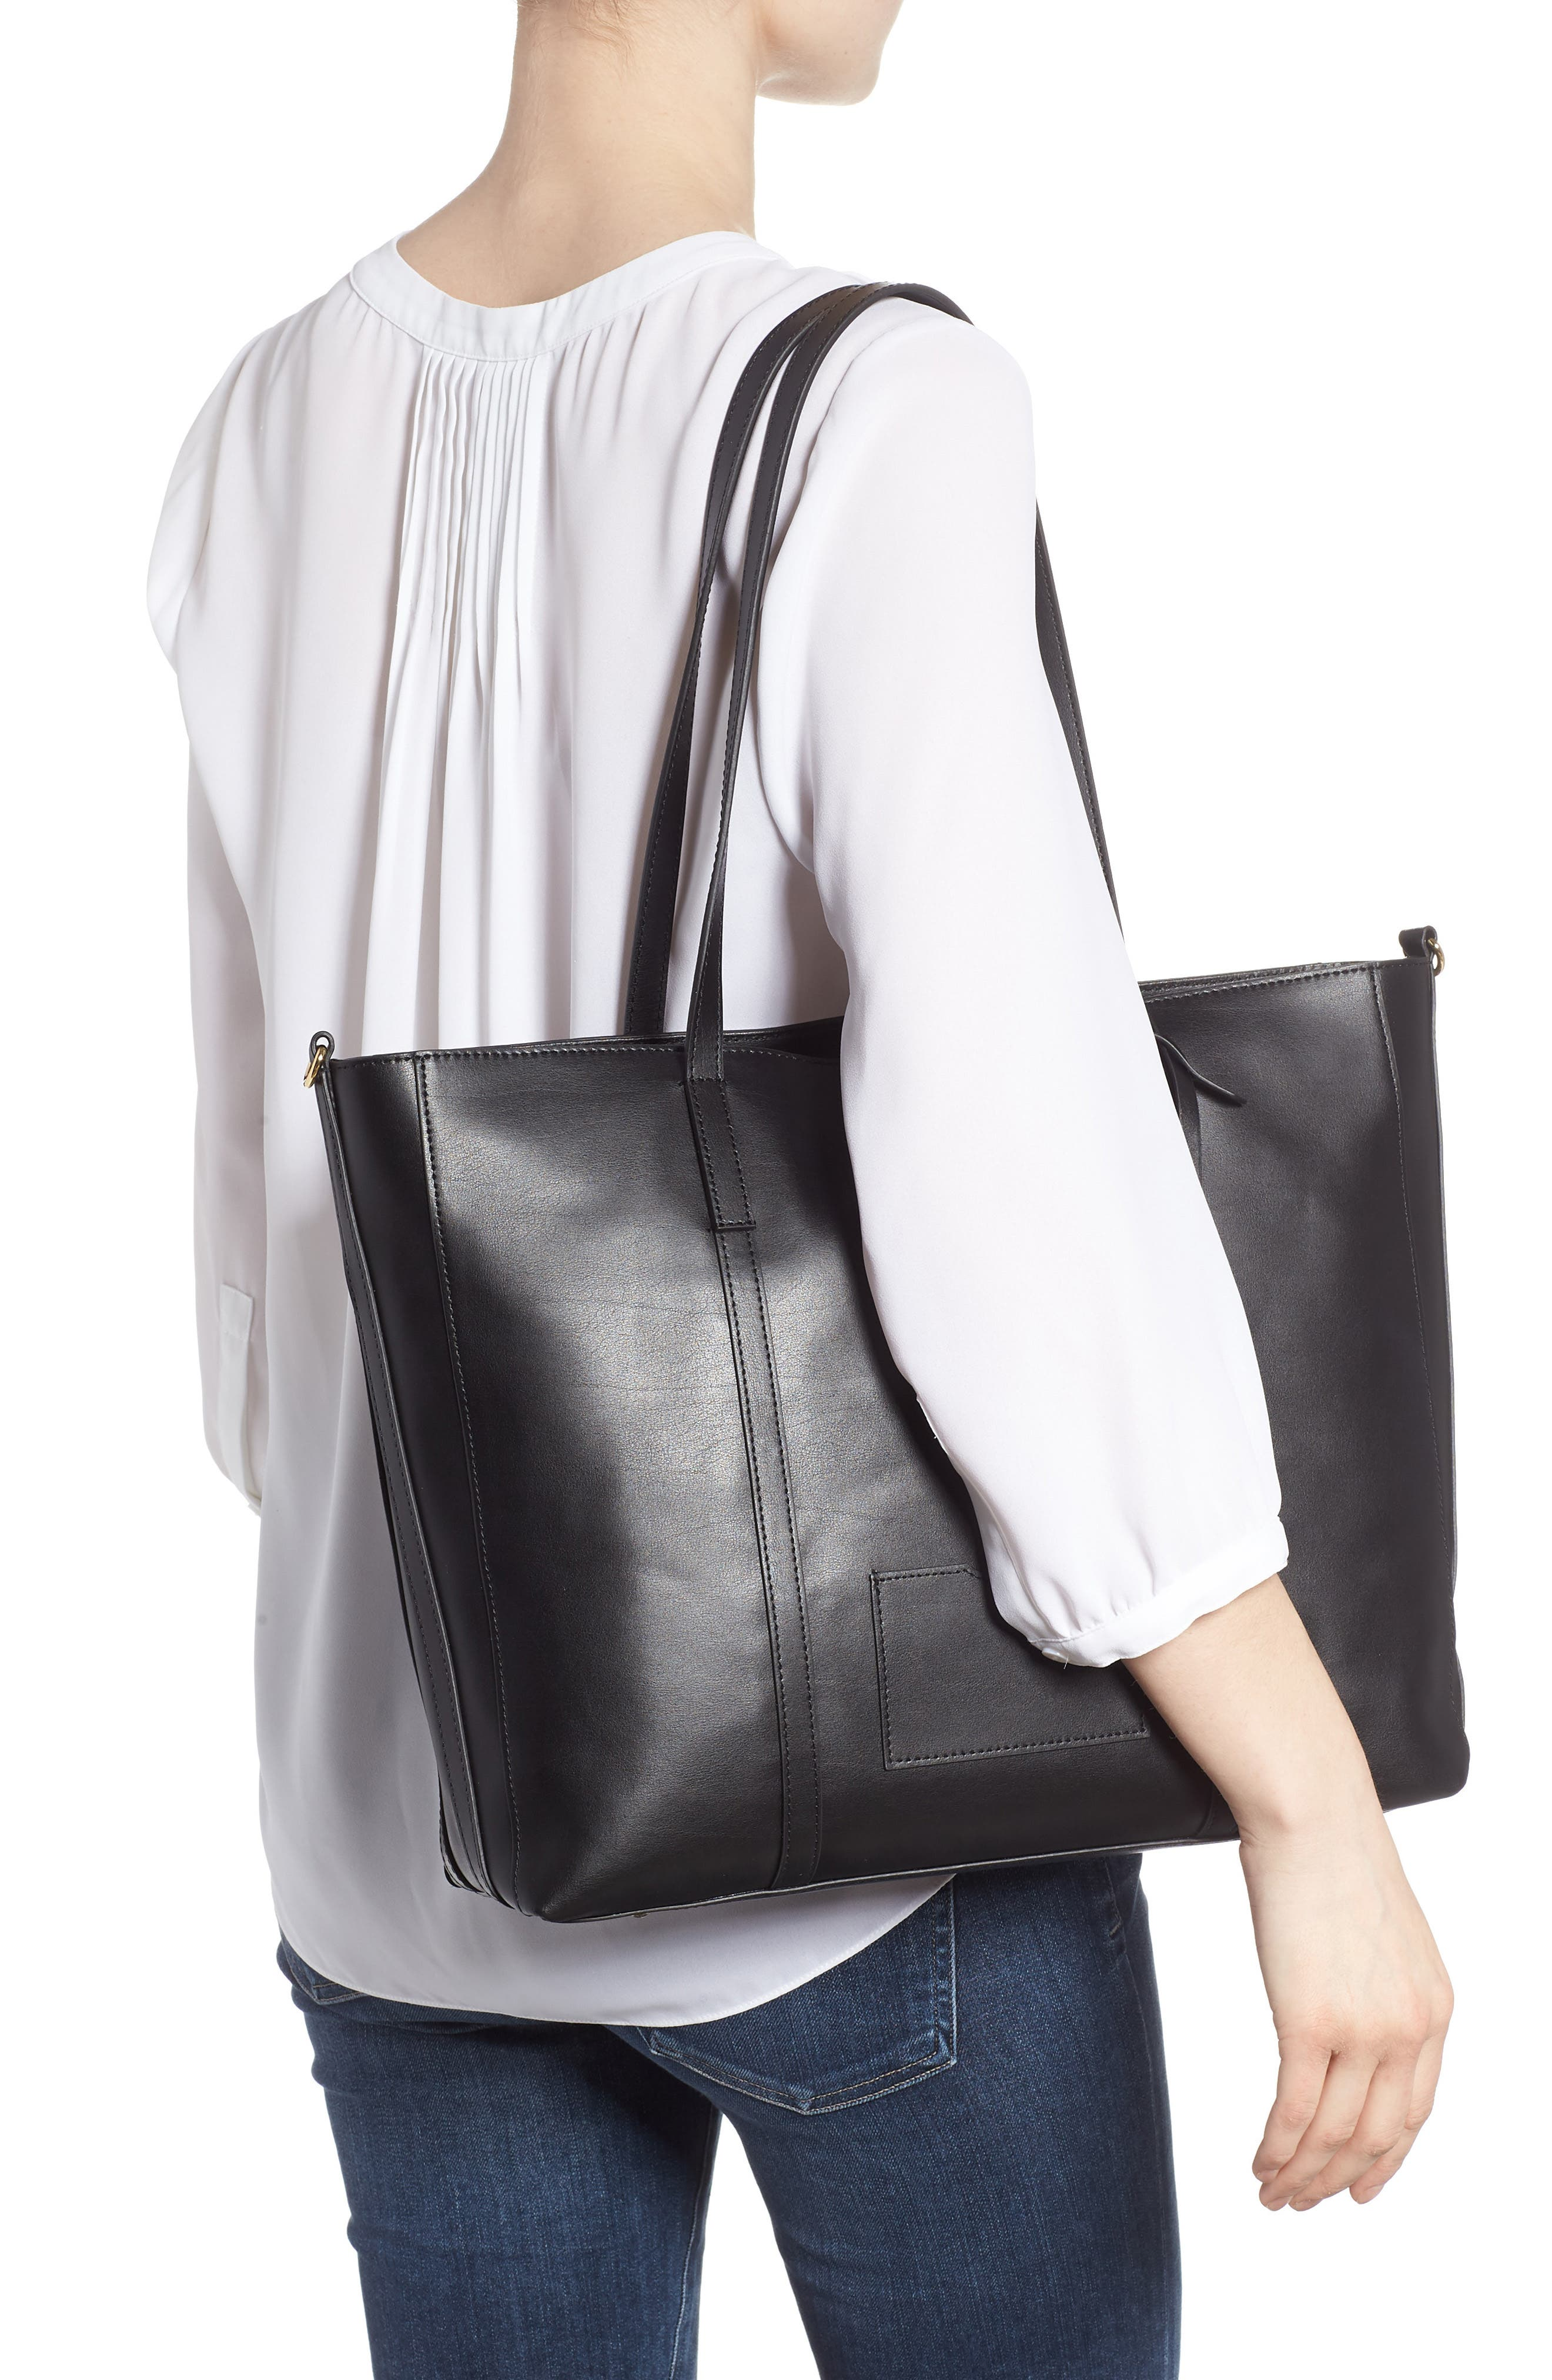 Nelly RFID Medium Leather Tote,                             Alternate thumbnail 2, color,                             BLACK